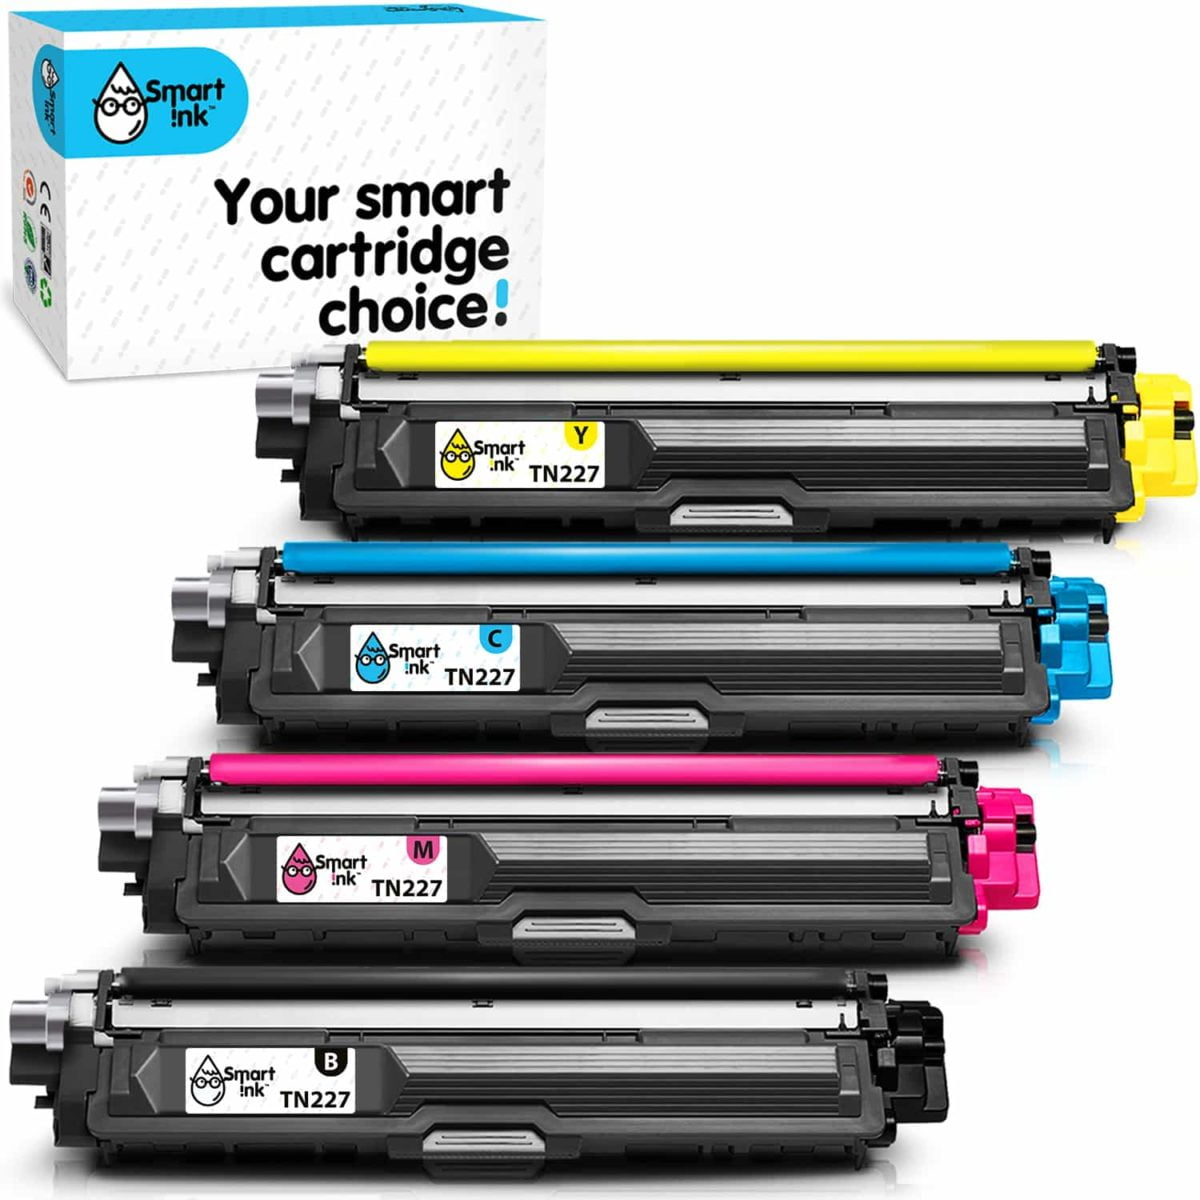 TN223, TN227. Smart Ink Toner Cartridge Replacement for Brother TN 223, TN 227 (4 pack), Compatible